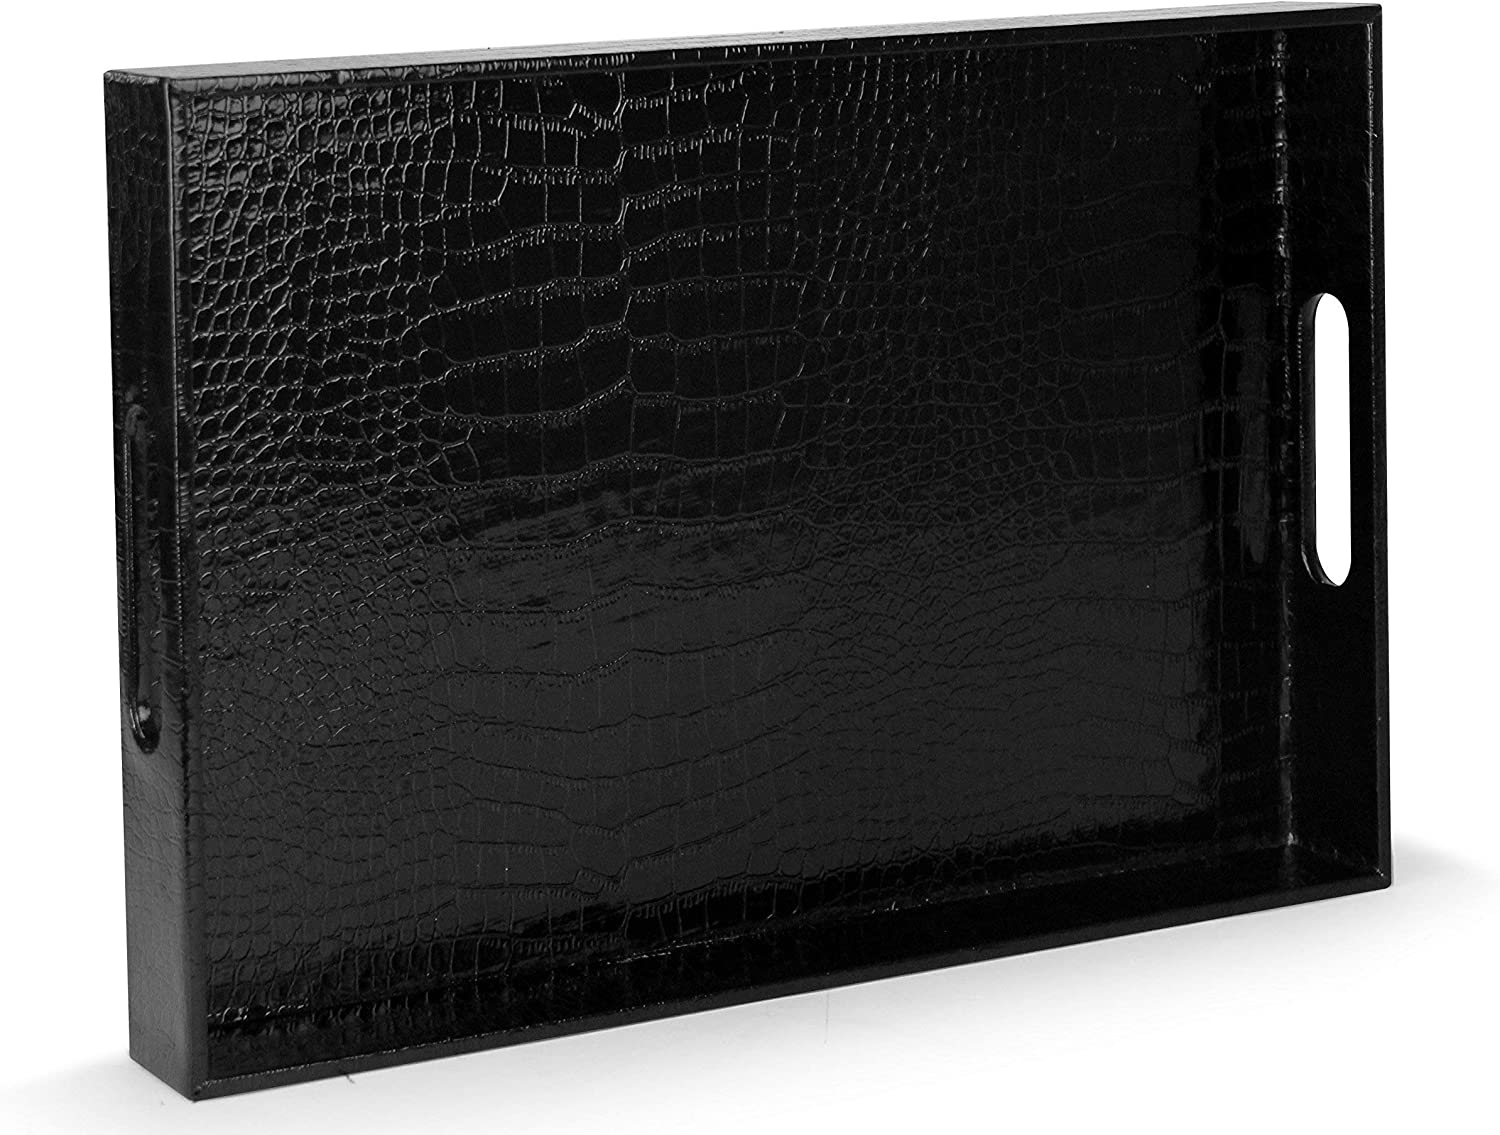 "Beautiful Modern Elegant Black 18""x12"" Rectangle Glossy Alligator Croc Decorative Ottoman Coffee Table Perfume Living Dining Room Kitchen Serving Tray With Handles By Home Redefined For All Occasion's"